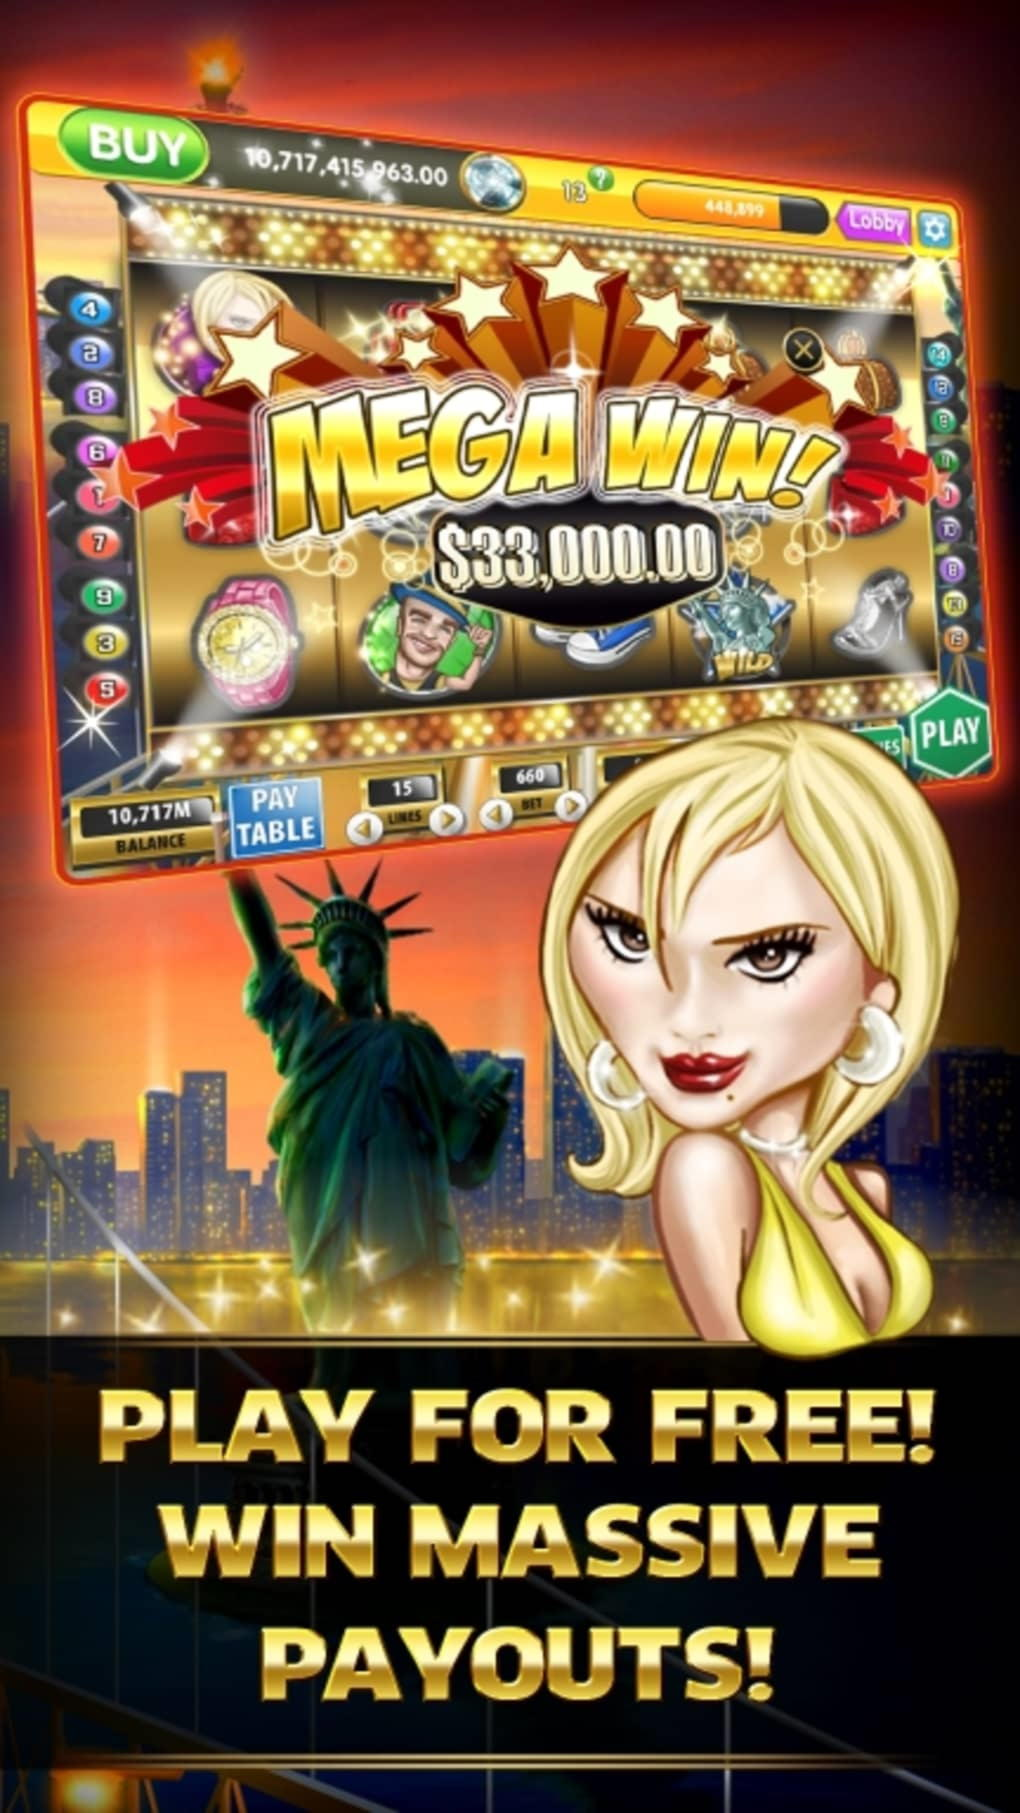 145 Free Spins no deposit casino at Uptown Pokies Casino